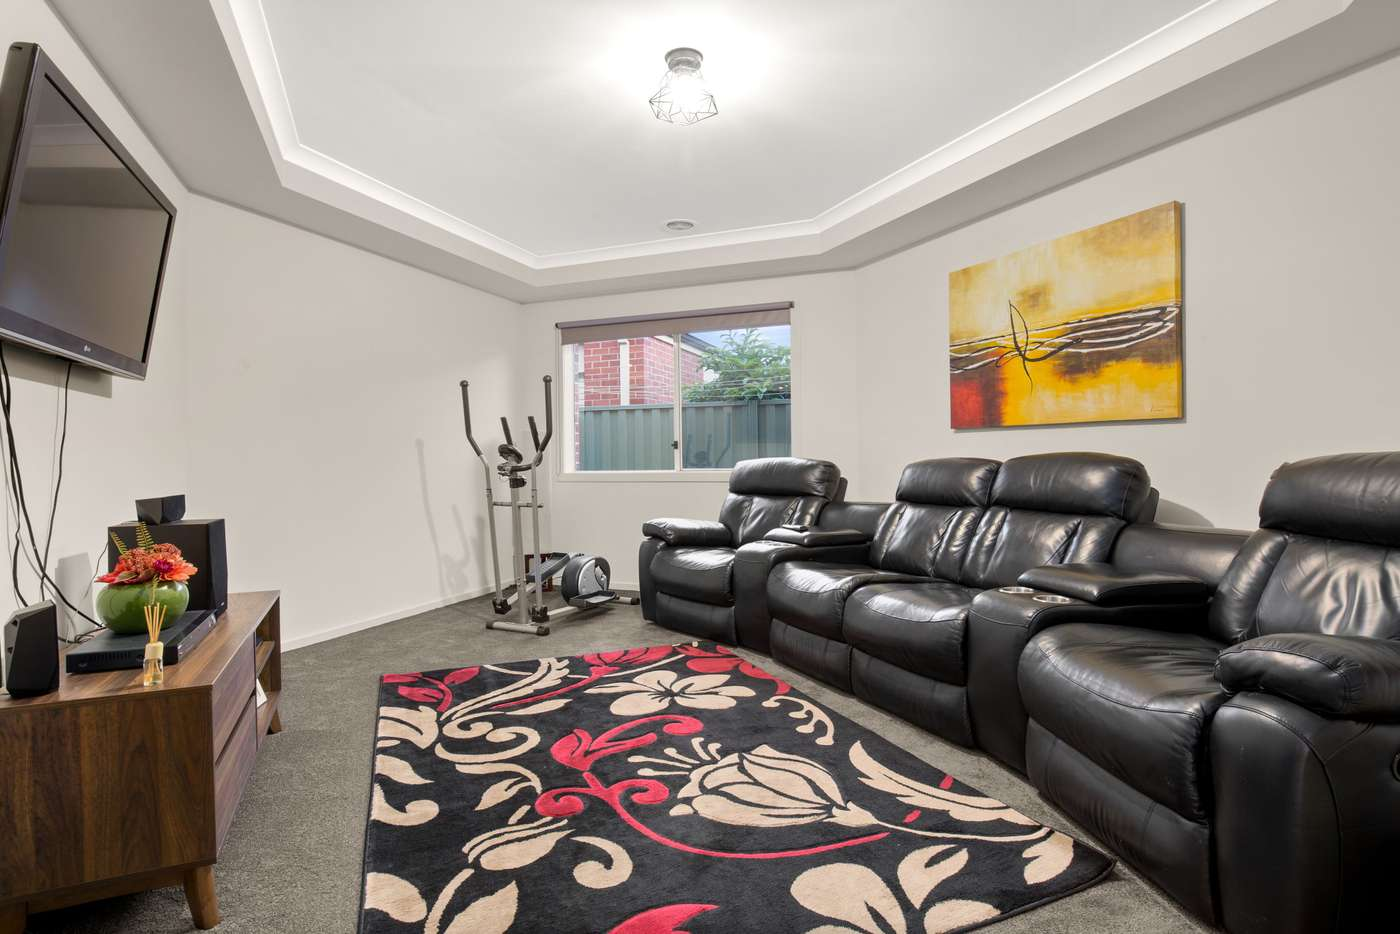 Sixth view of Homely house listing, 8 Charolais Court, Pakenham VIC 3810